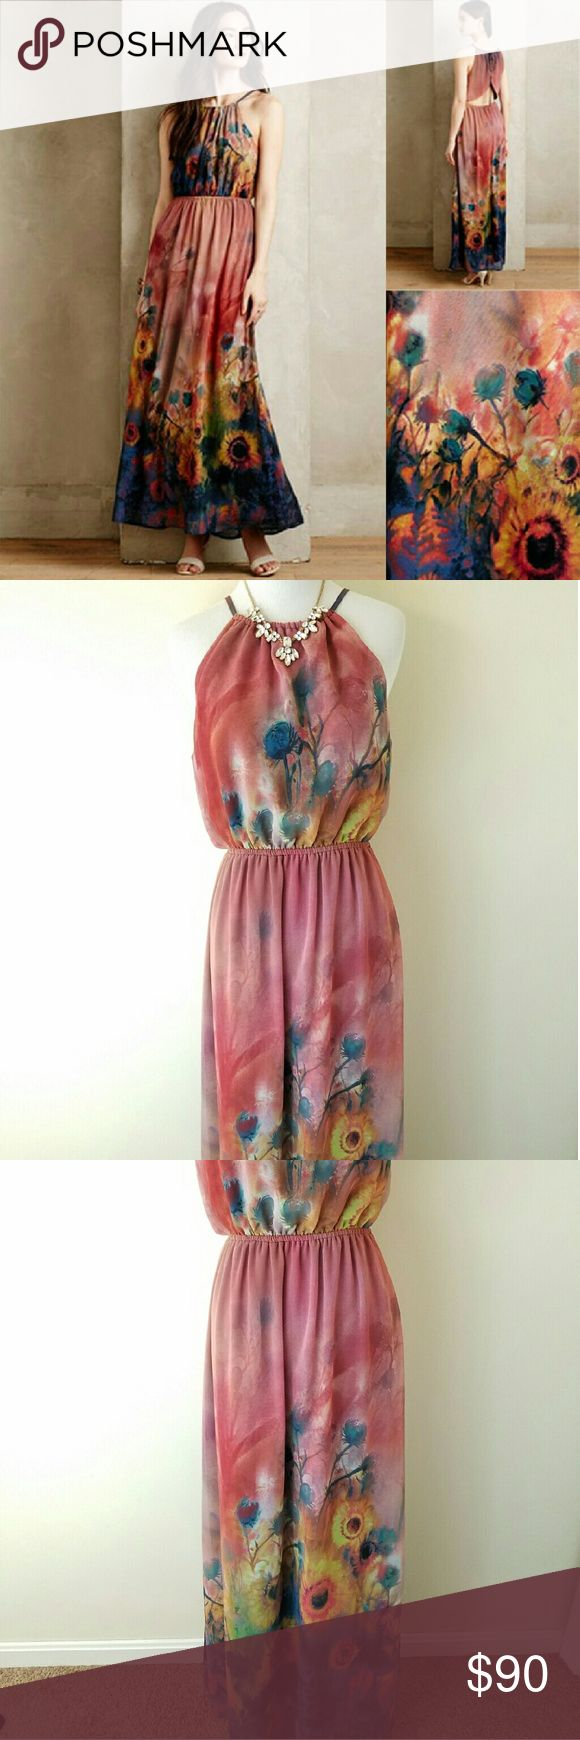 Anthropologie brand label maxi dress size medium M Like new! Worn once to an event! This dress is amazing! I got its of compliments:) Anthropologie Dresses Maxi